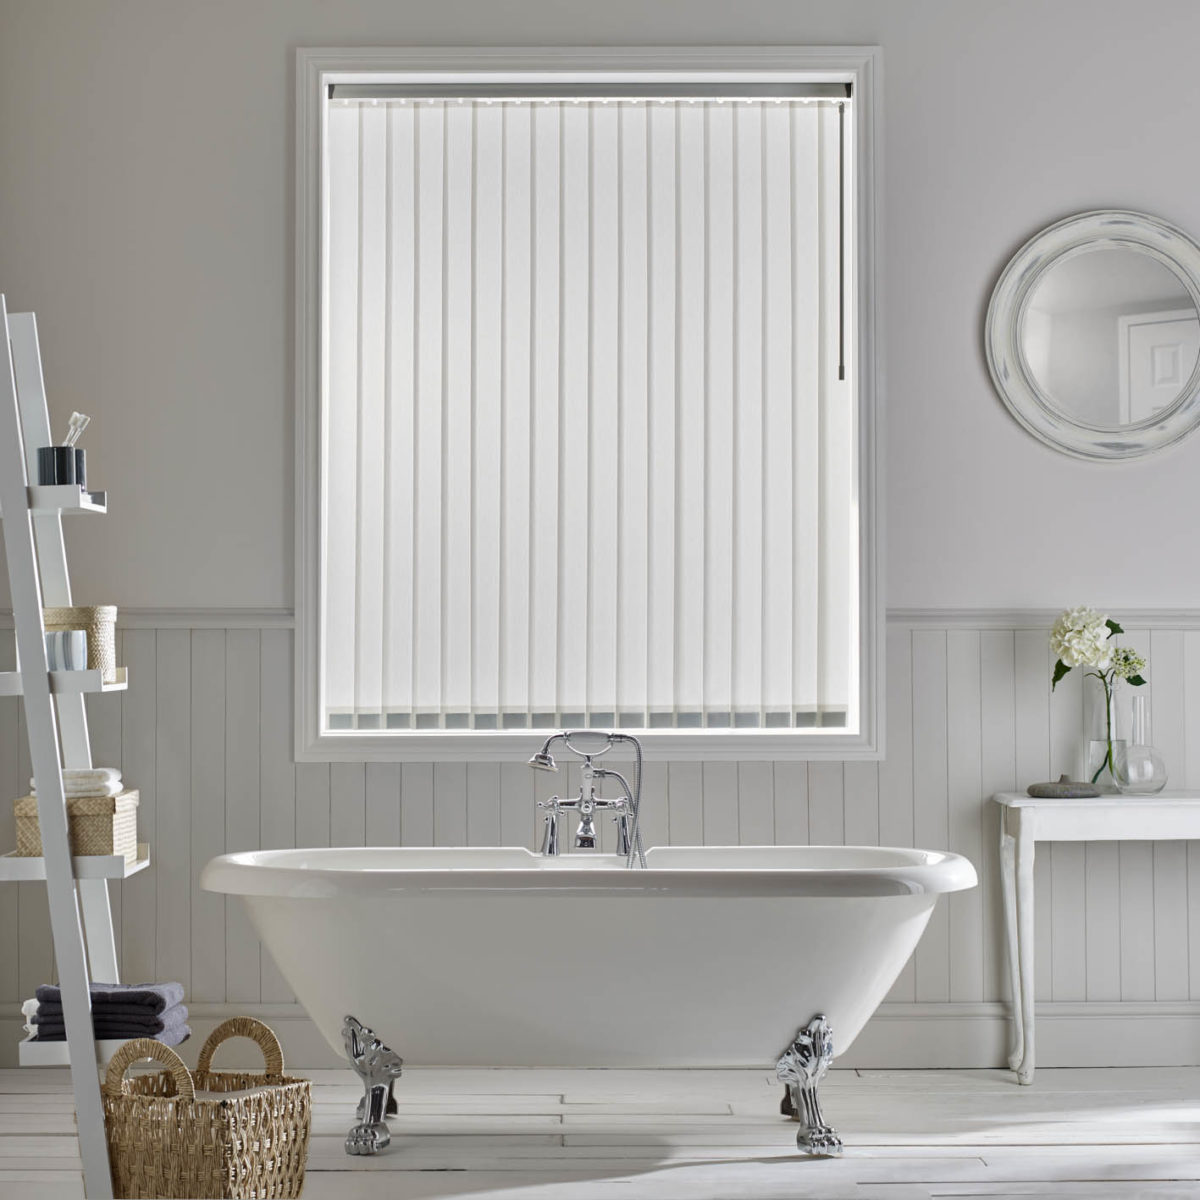 What Are The Best Types Of Blinds For Laundries And Bathrooms?